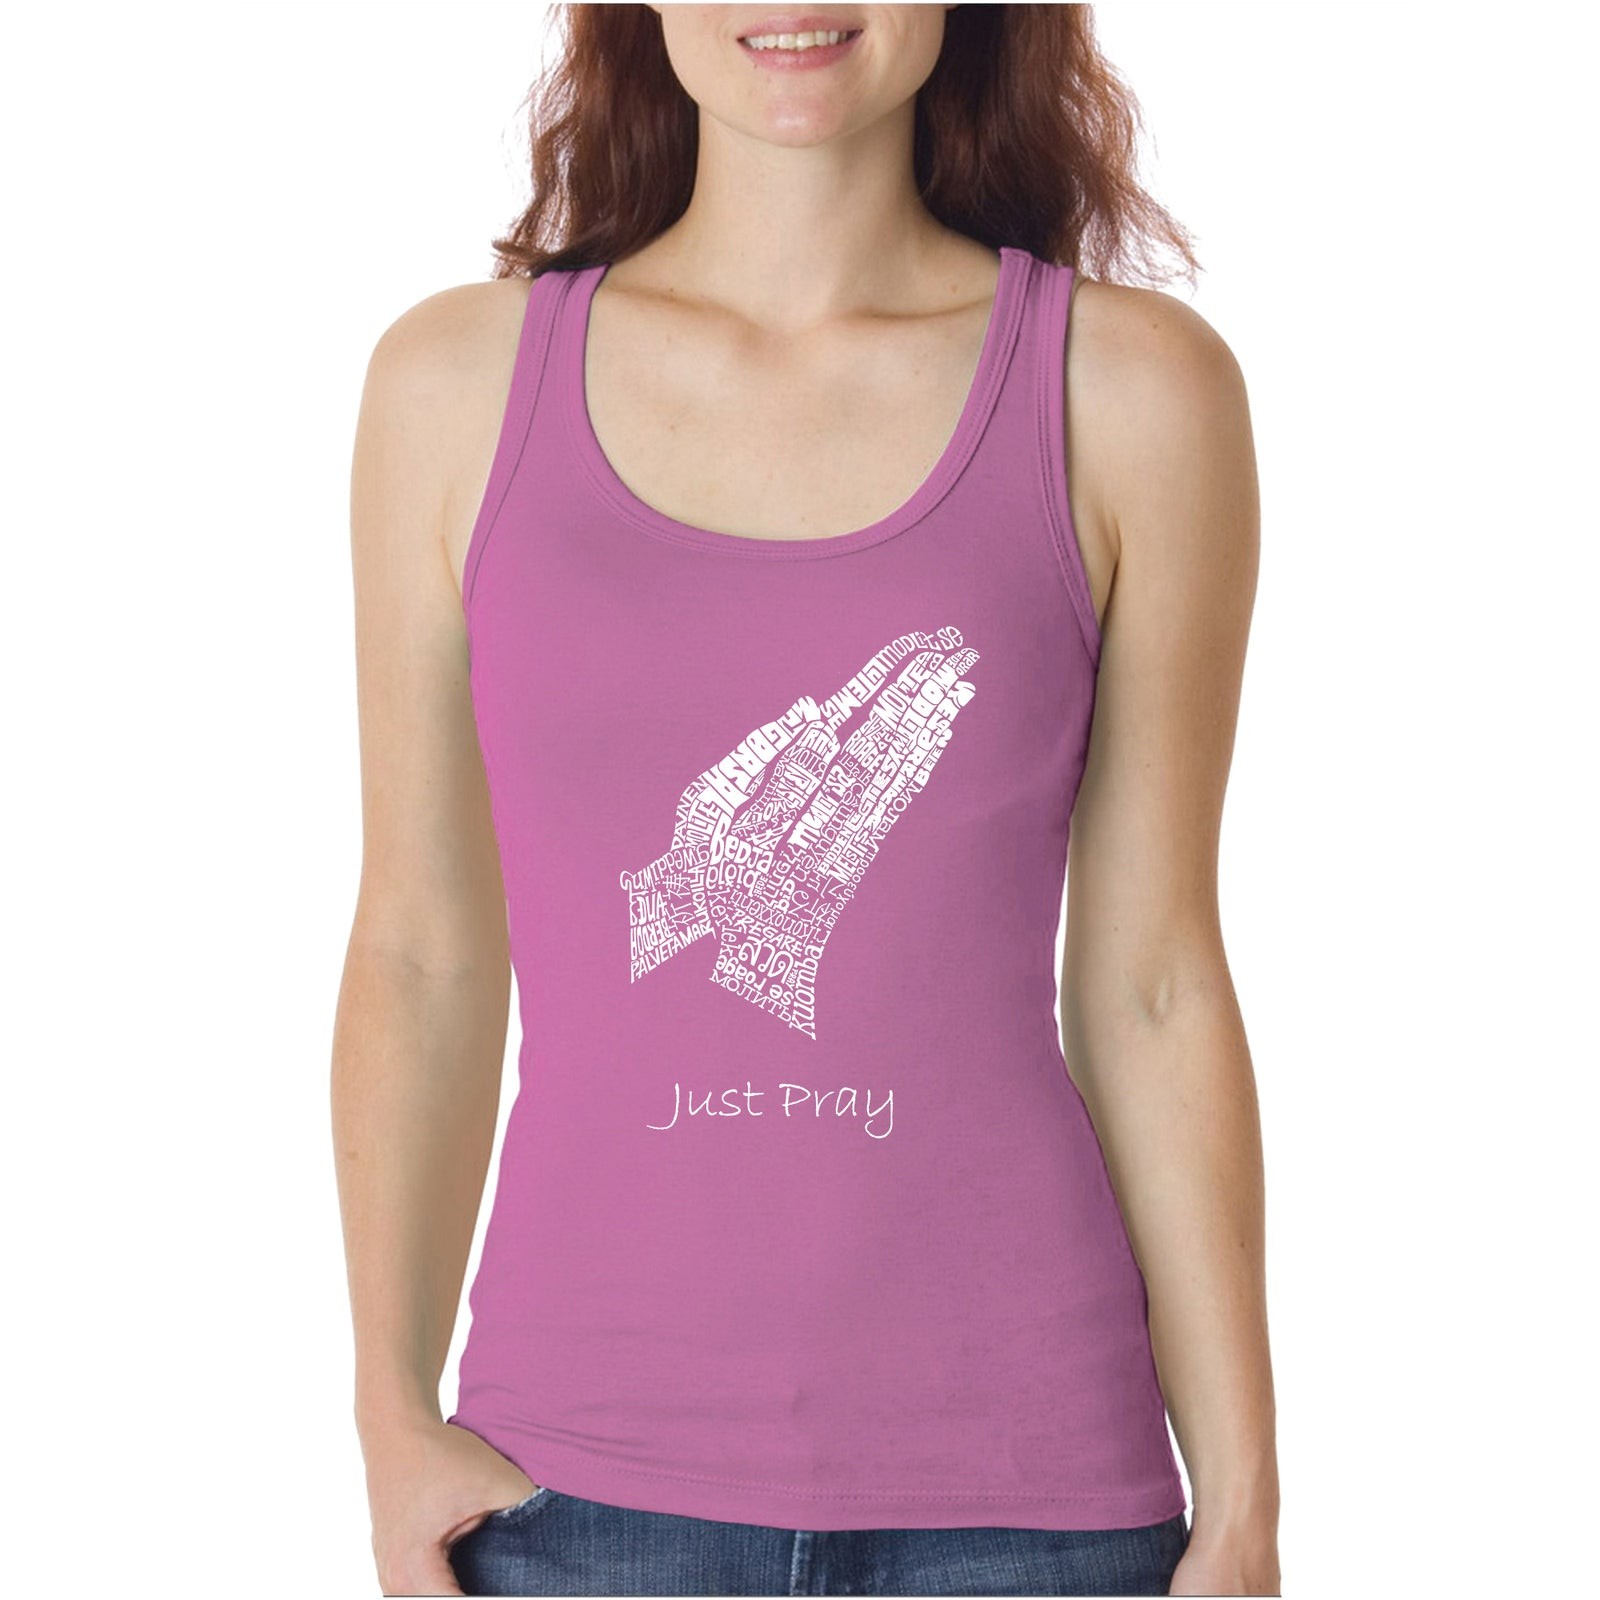 Women's Tank Top - Prayer Hands